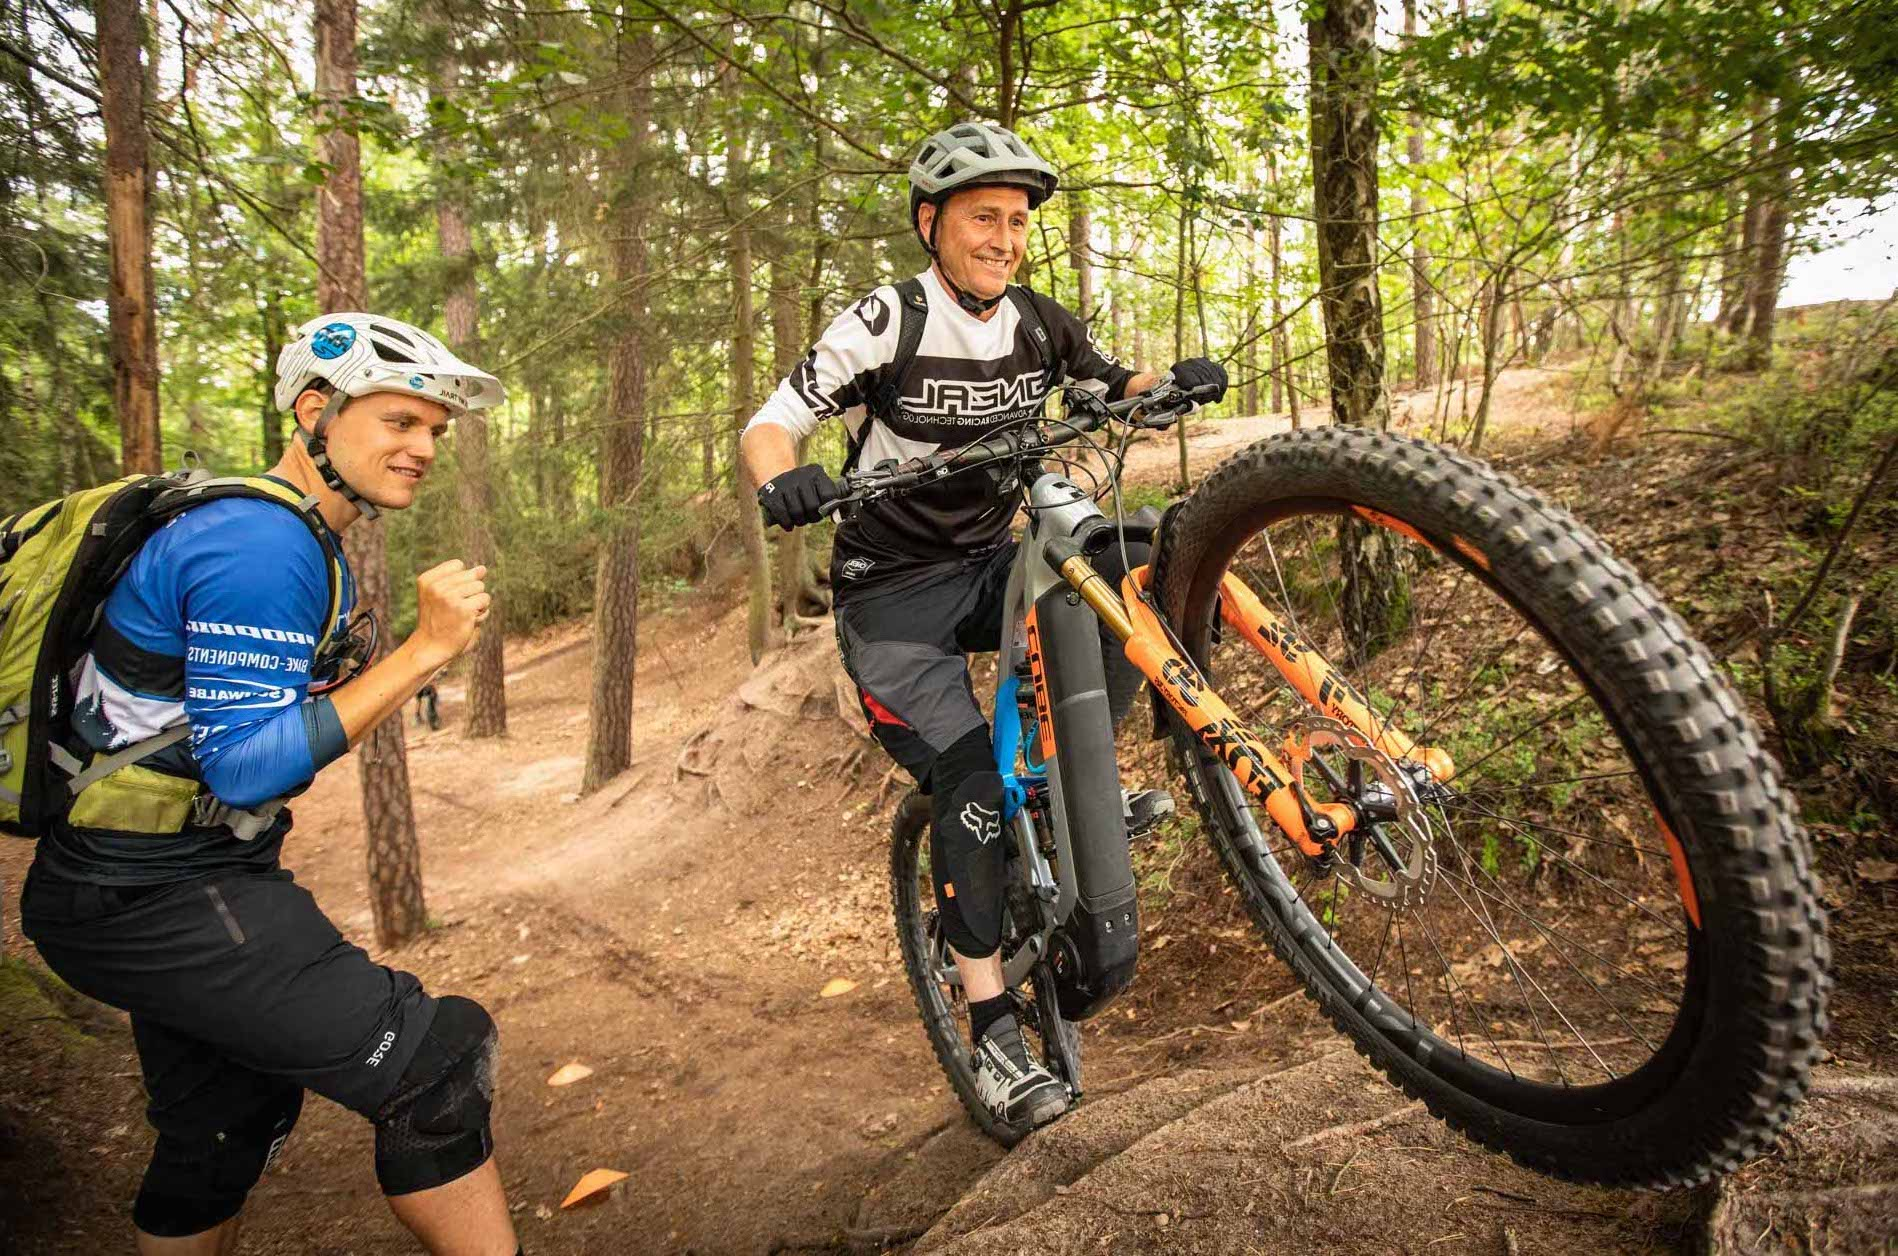 Mountainbike eBike MTB Fahrtechnik Kurse in Esslingen - Stuttgart - Training Rock my Trail Bikeschule